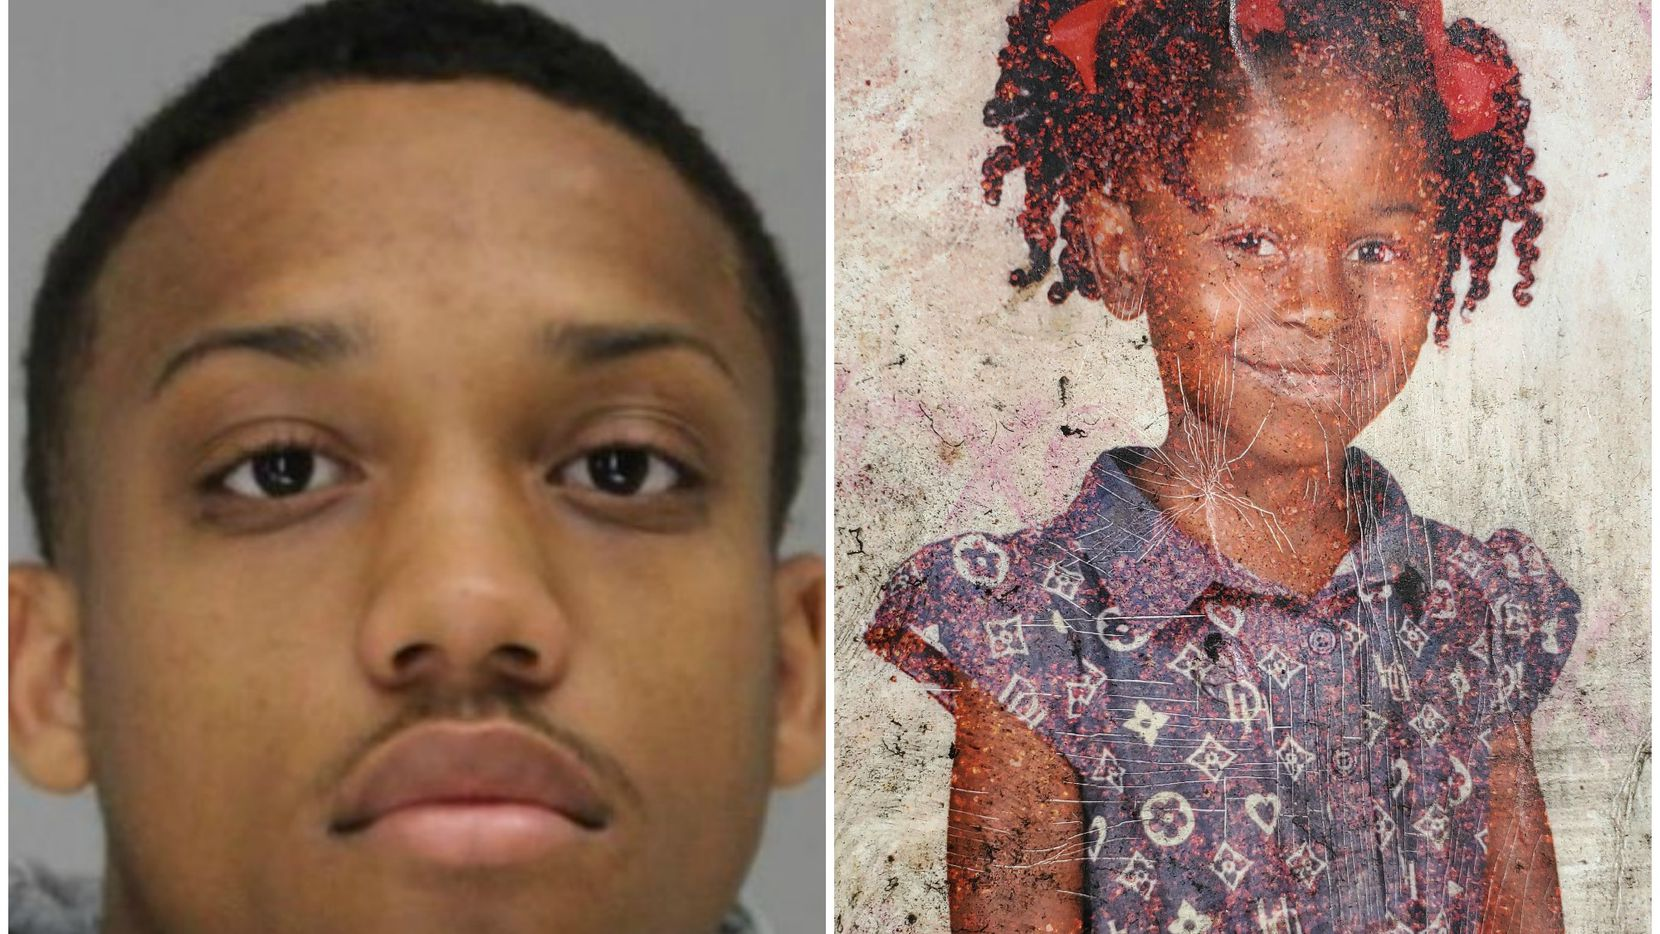 Tyrese Simmons was named as a suspect in the death of 9-year-old Brandoniya Bennett. Police suspect Simmons was gunning or a rival rapper when he allegedly fired into the girl's home.